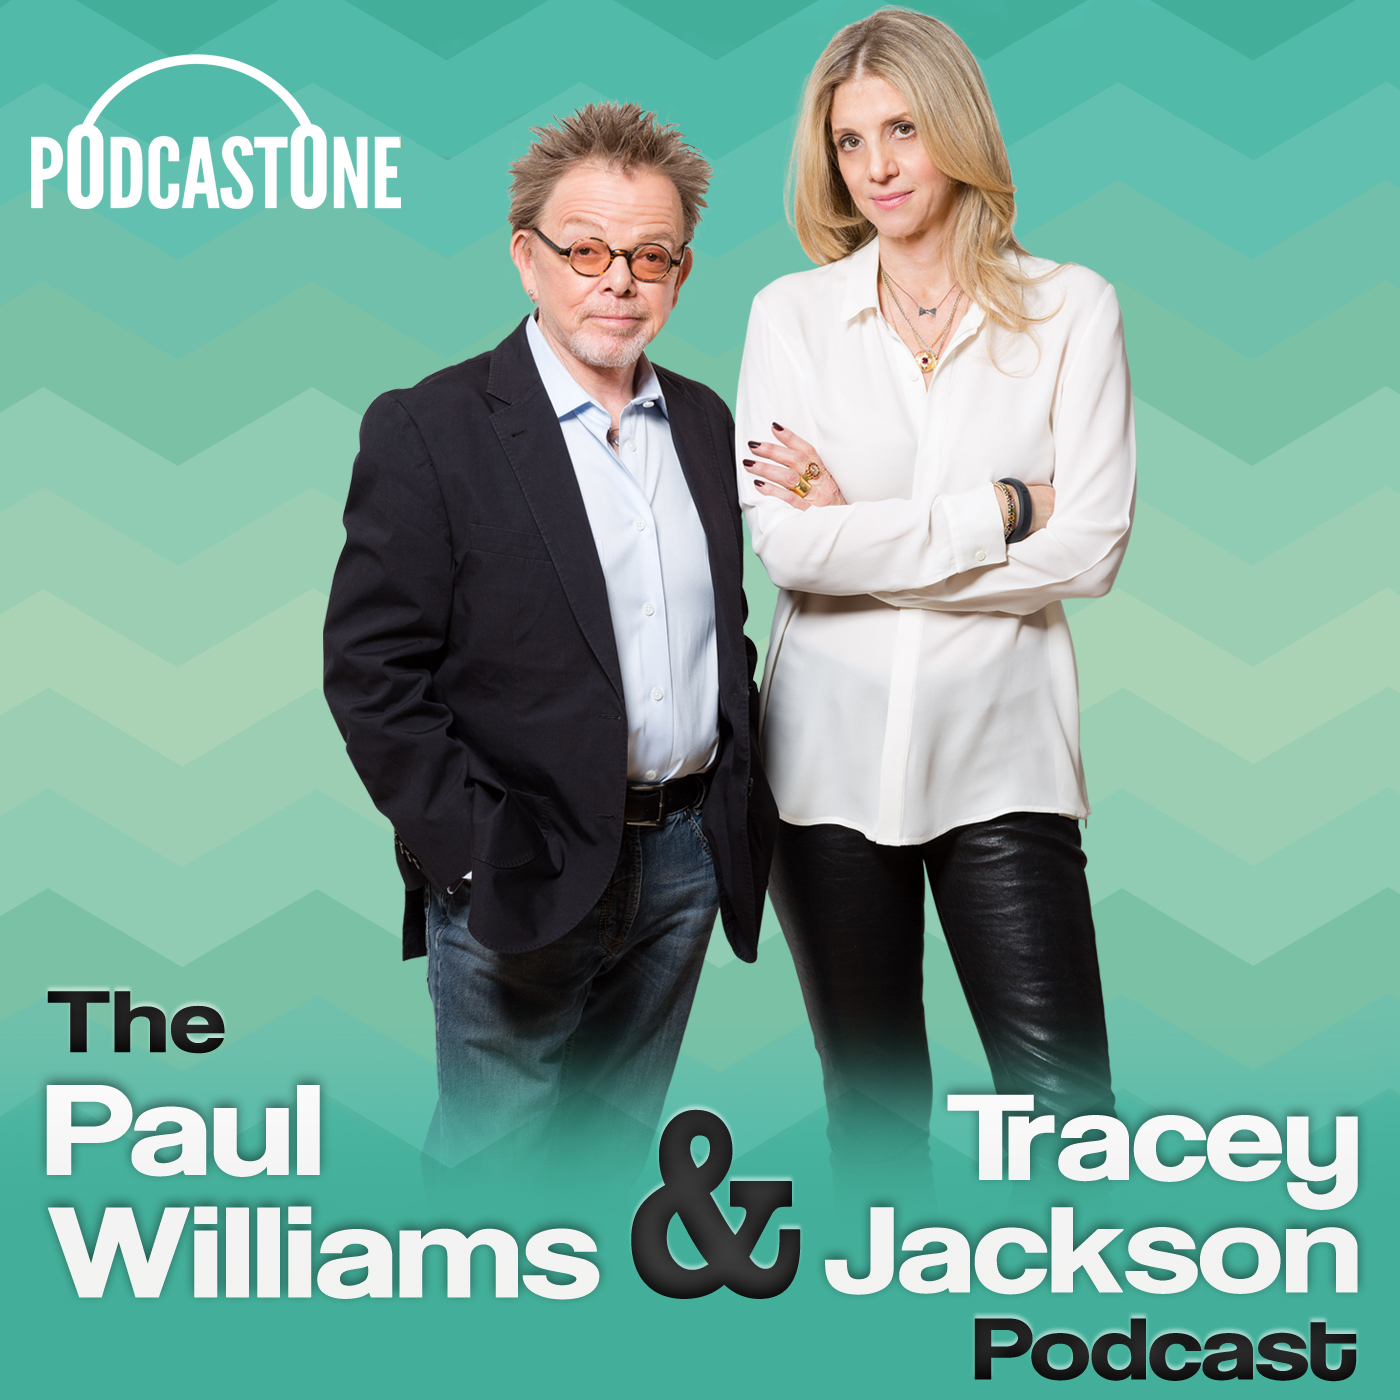 The Paul Williams and Tracey Jackson Podcast